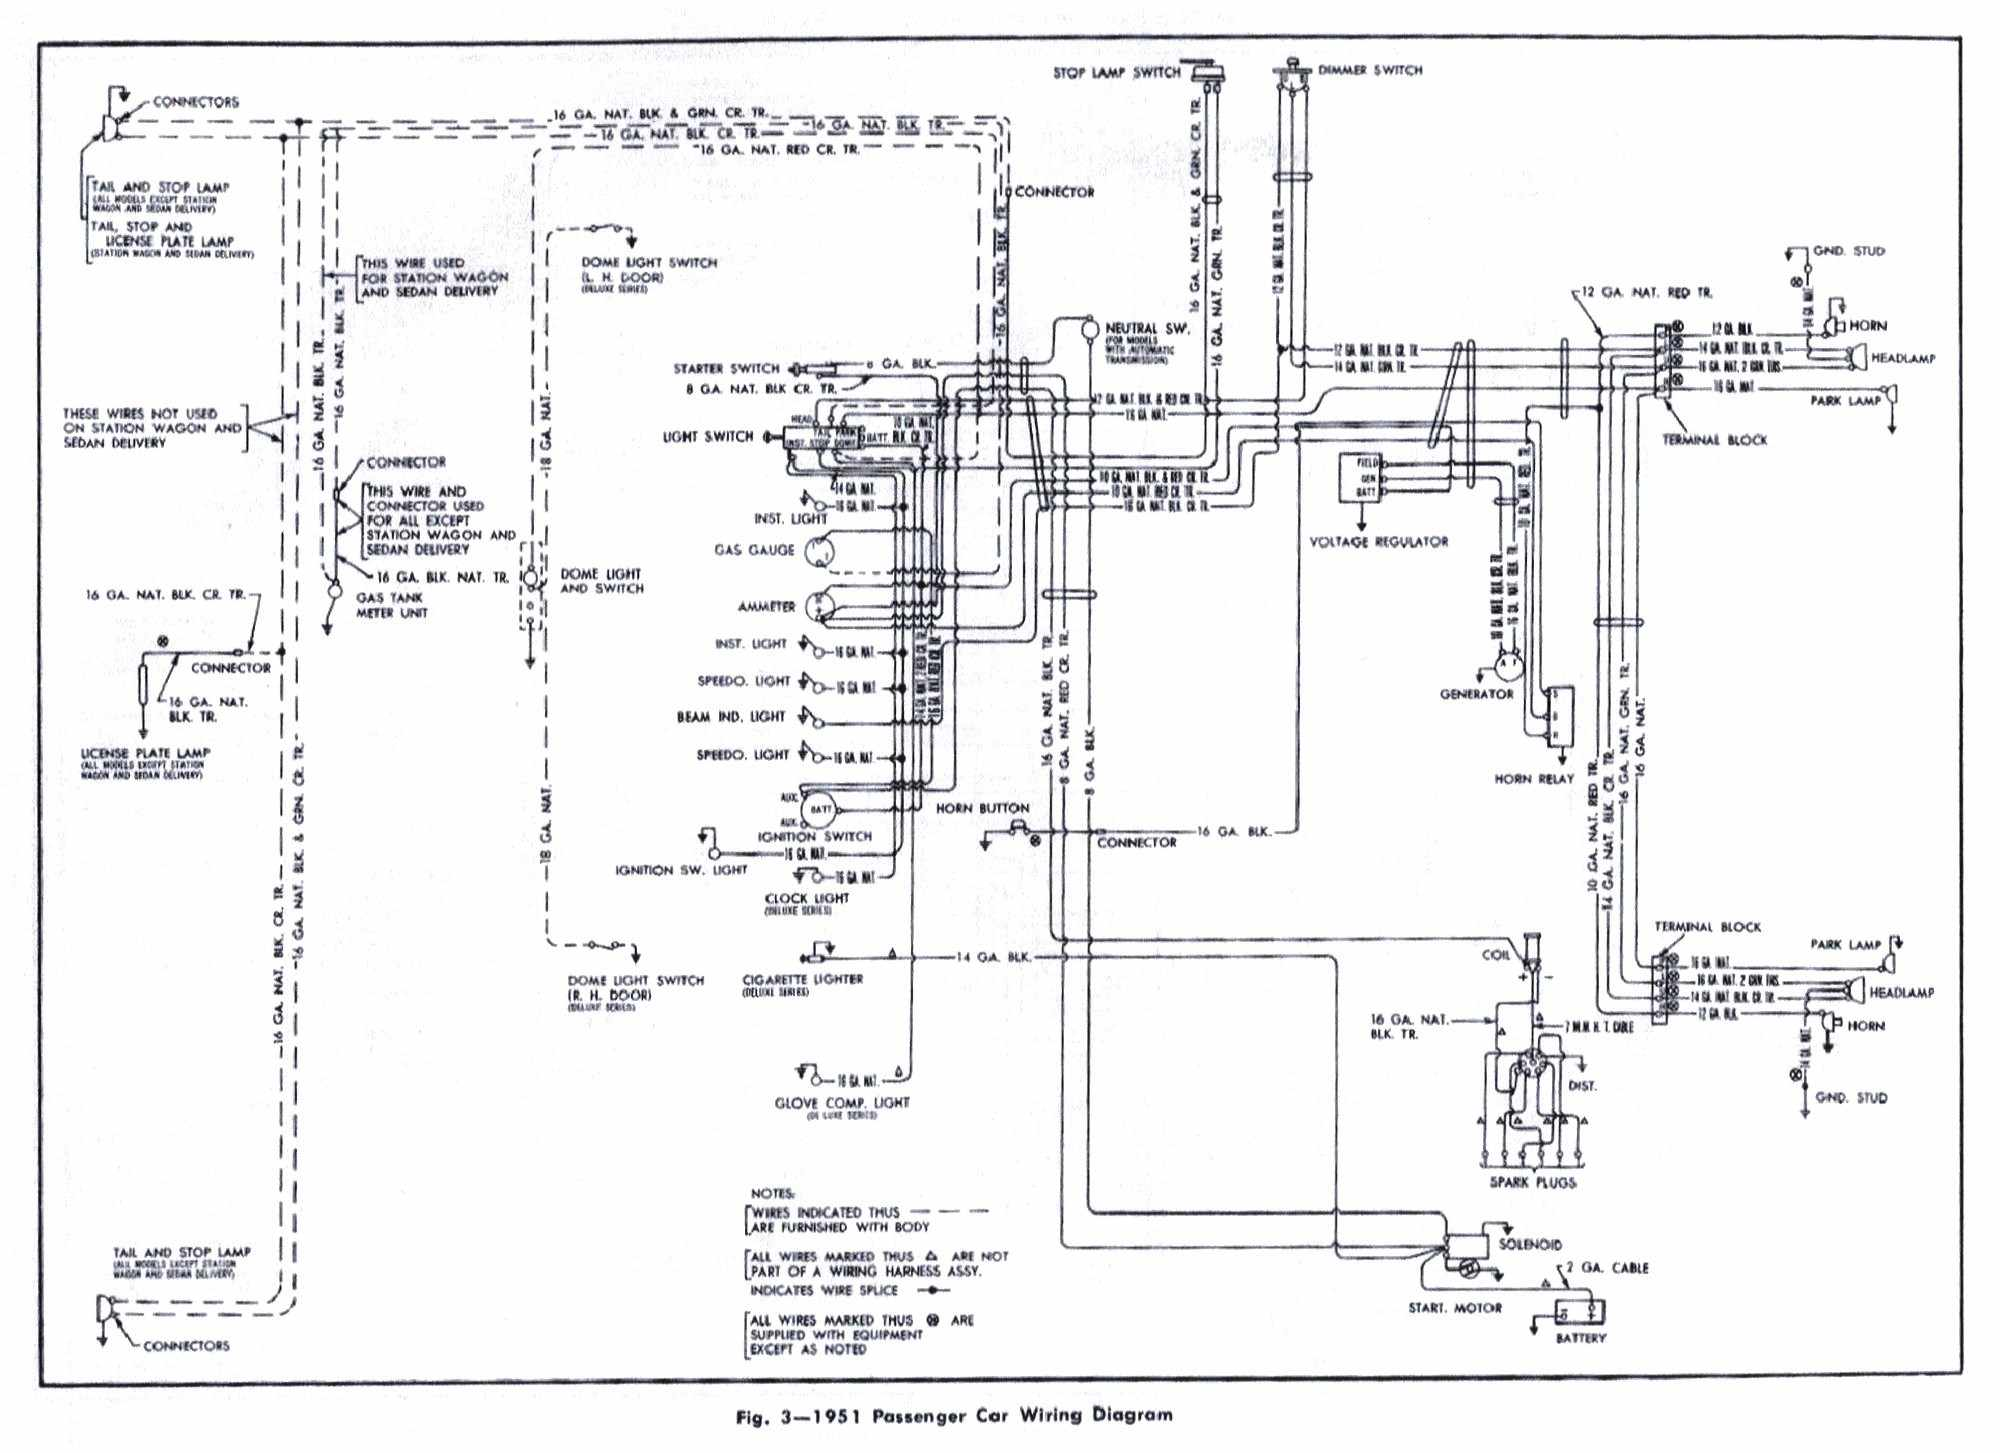 Chevrolet Car Manuals Wiring Diagrams Pdf Fault Codes Chevy Instrument Cluster Diagram 1997 Download